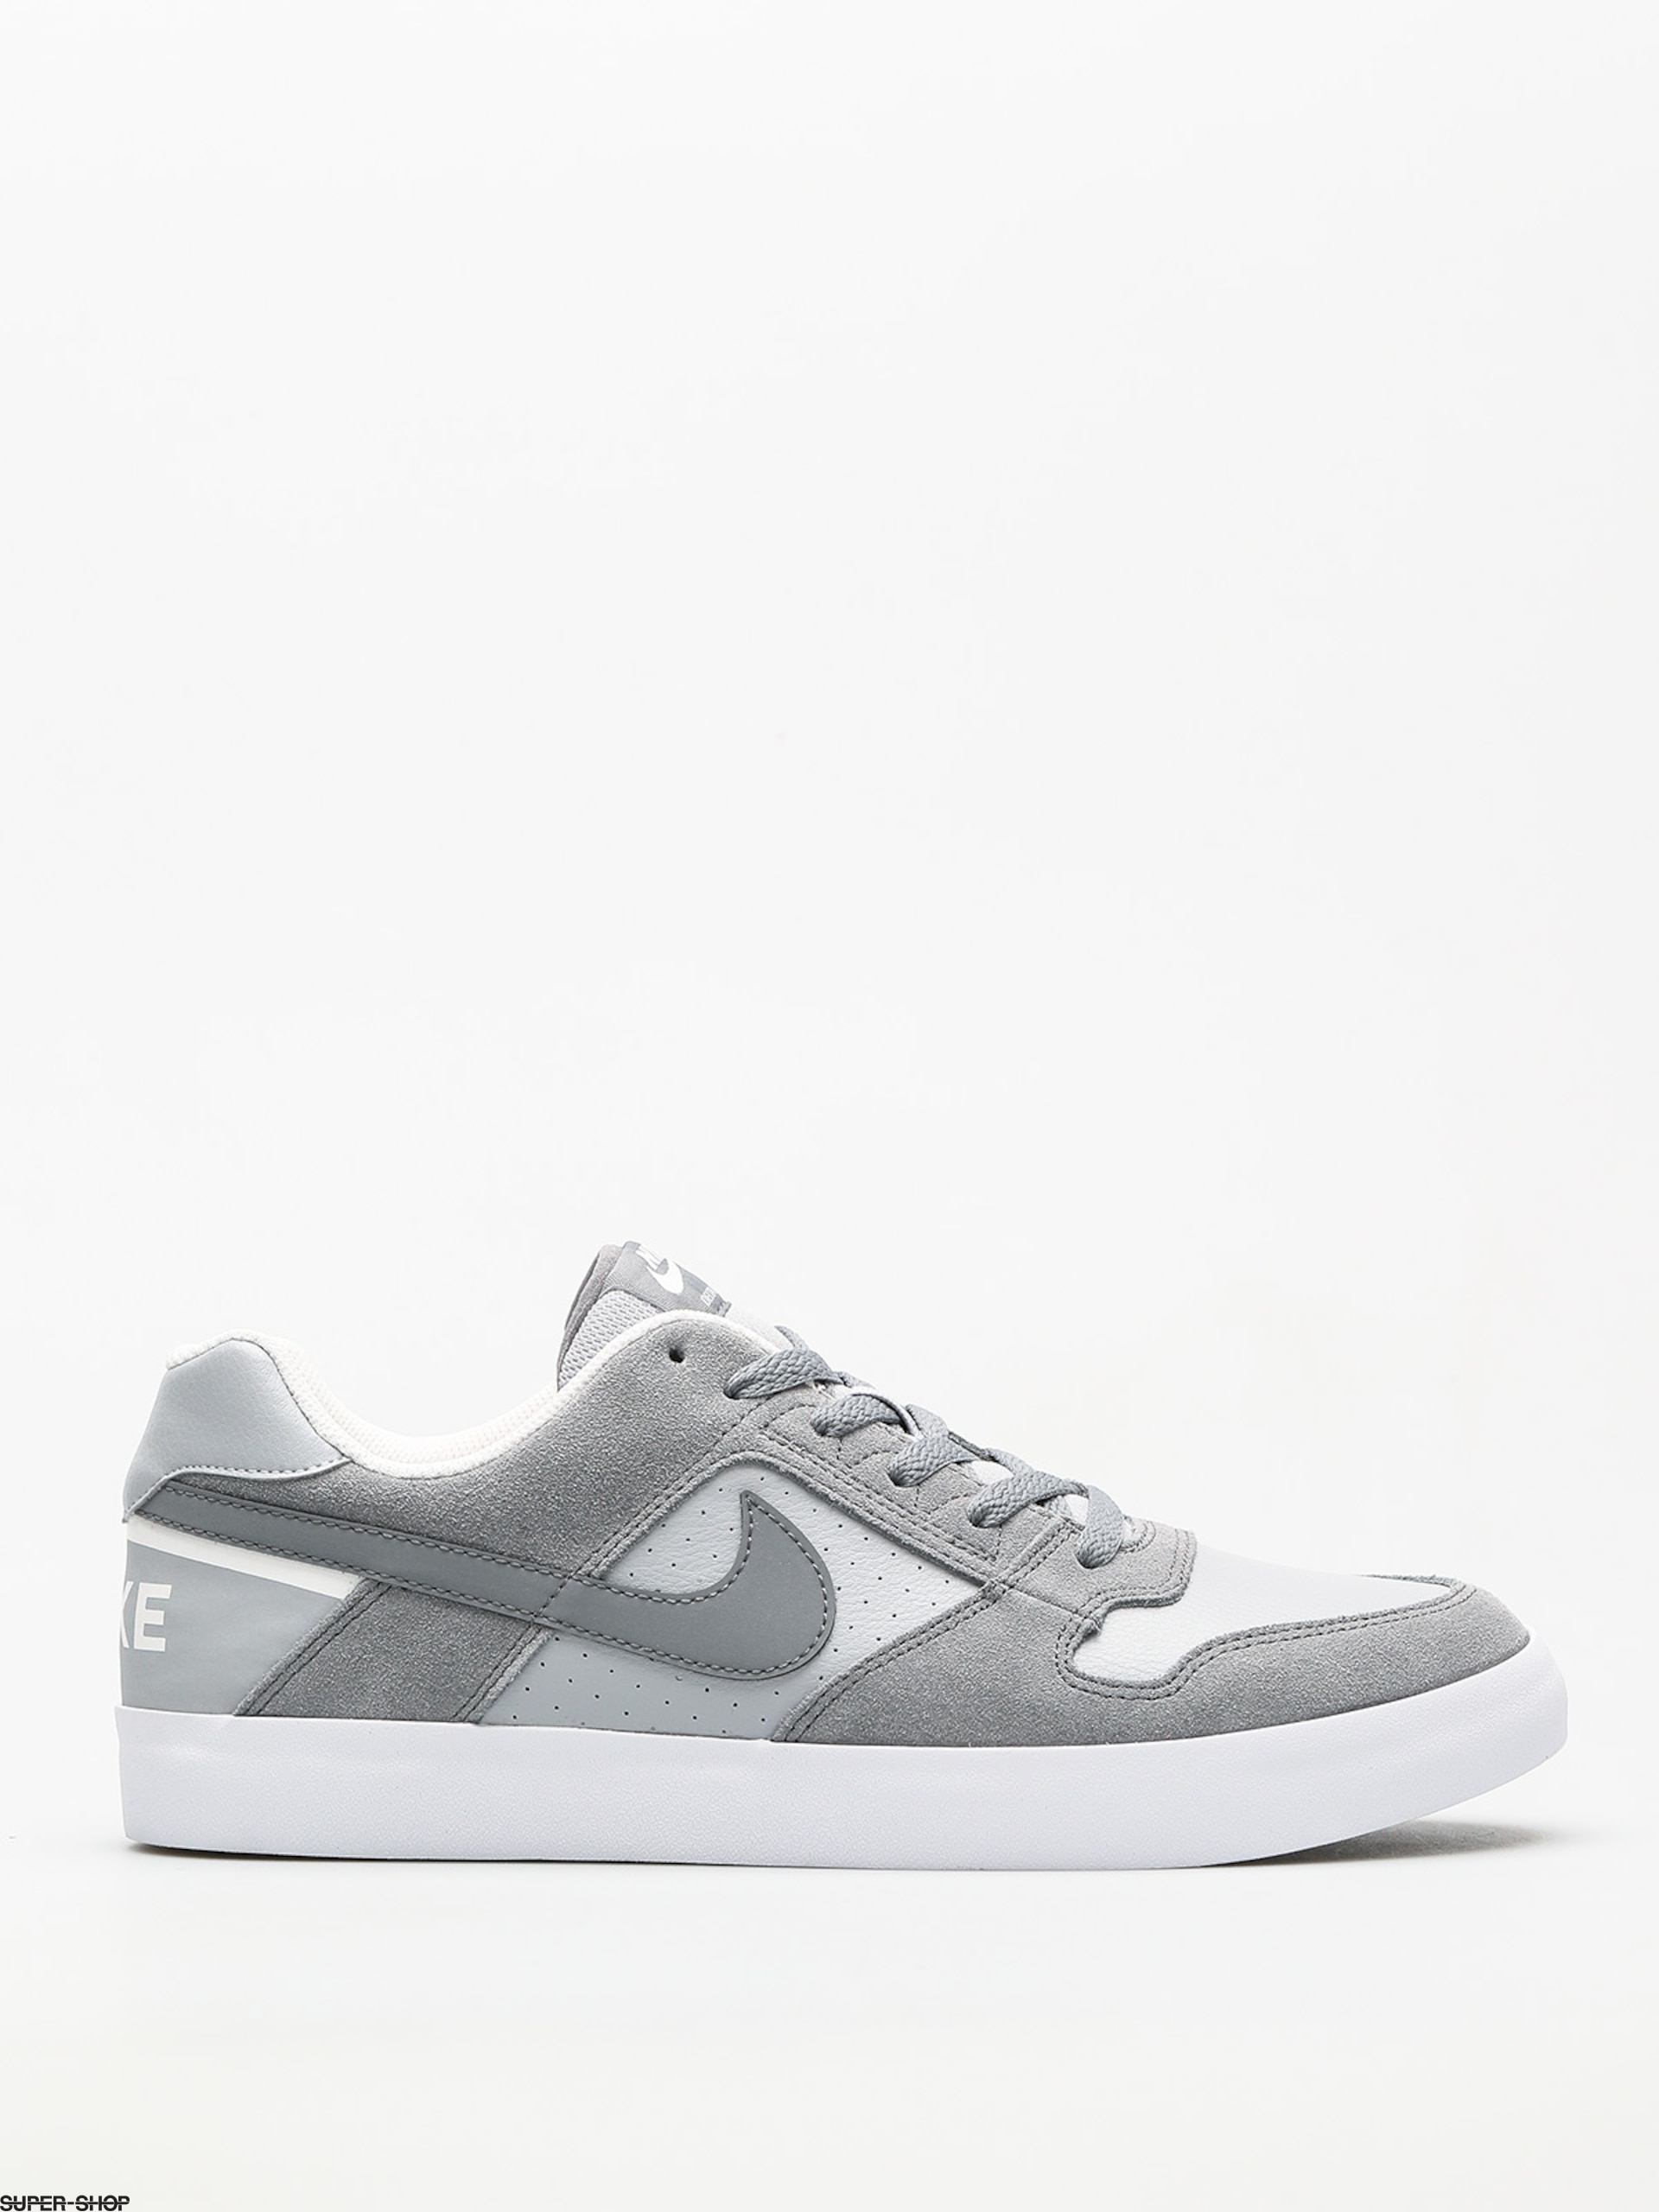 Nike SB Shoes Sb Delta Force Vulc (cool grey cool grey wolf grey white) 92c0a63a0700